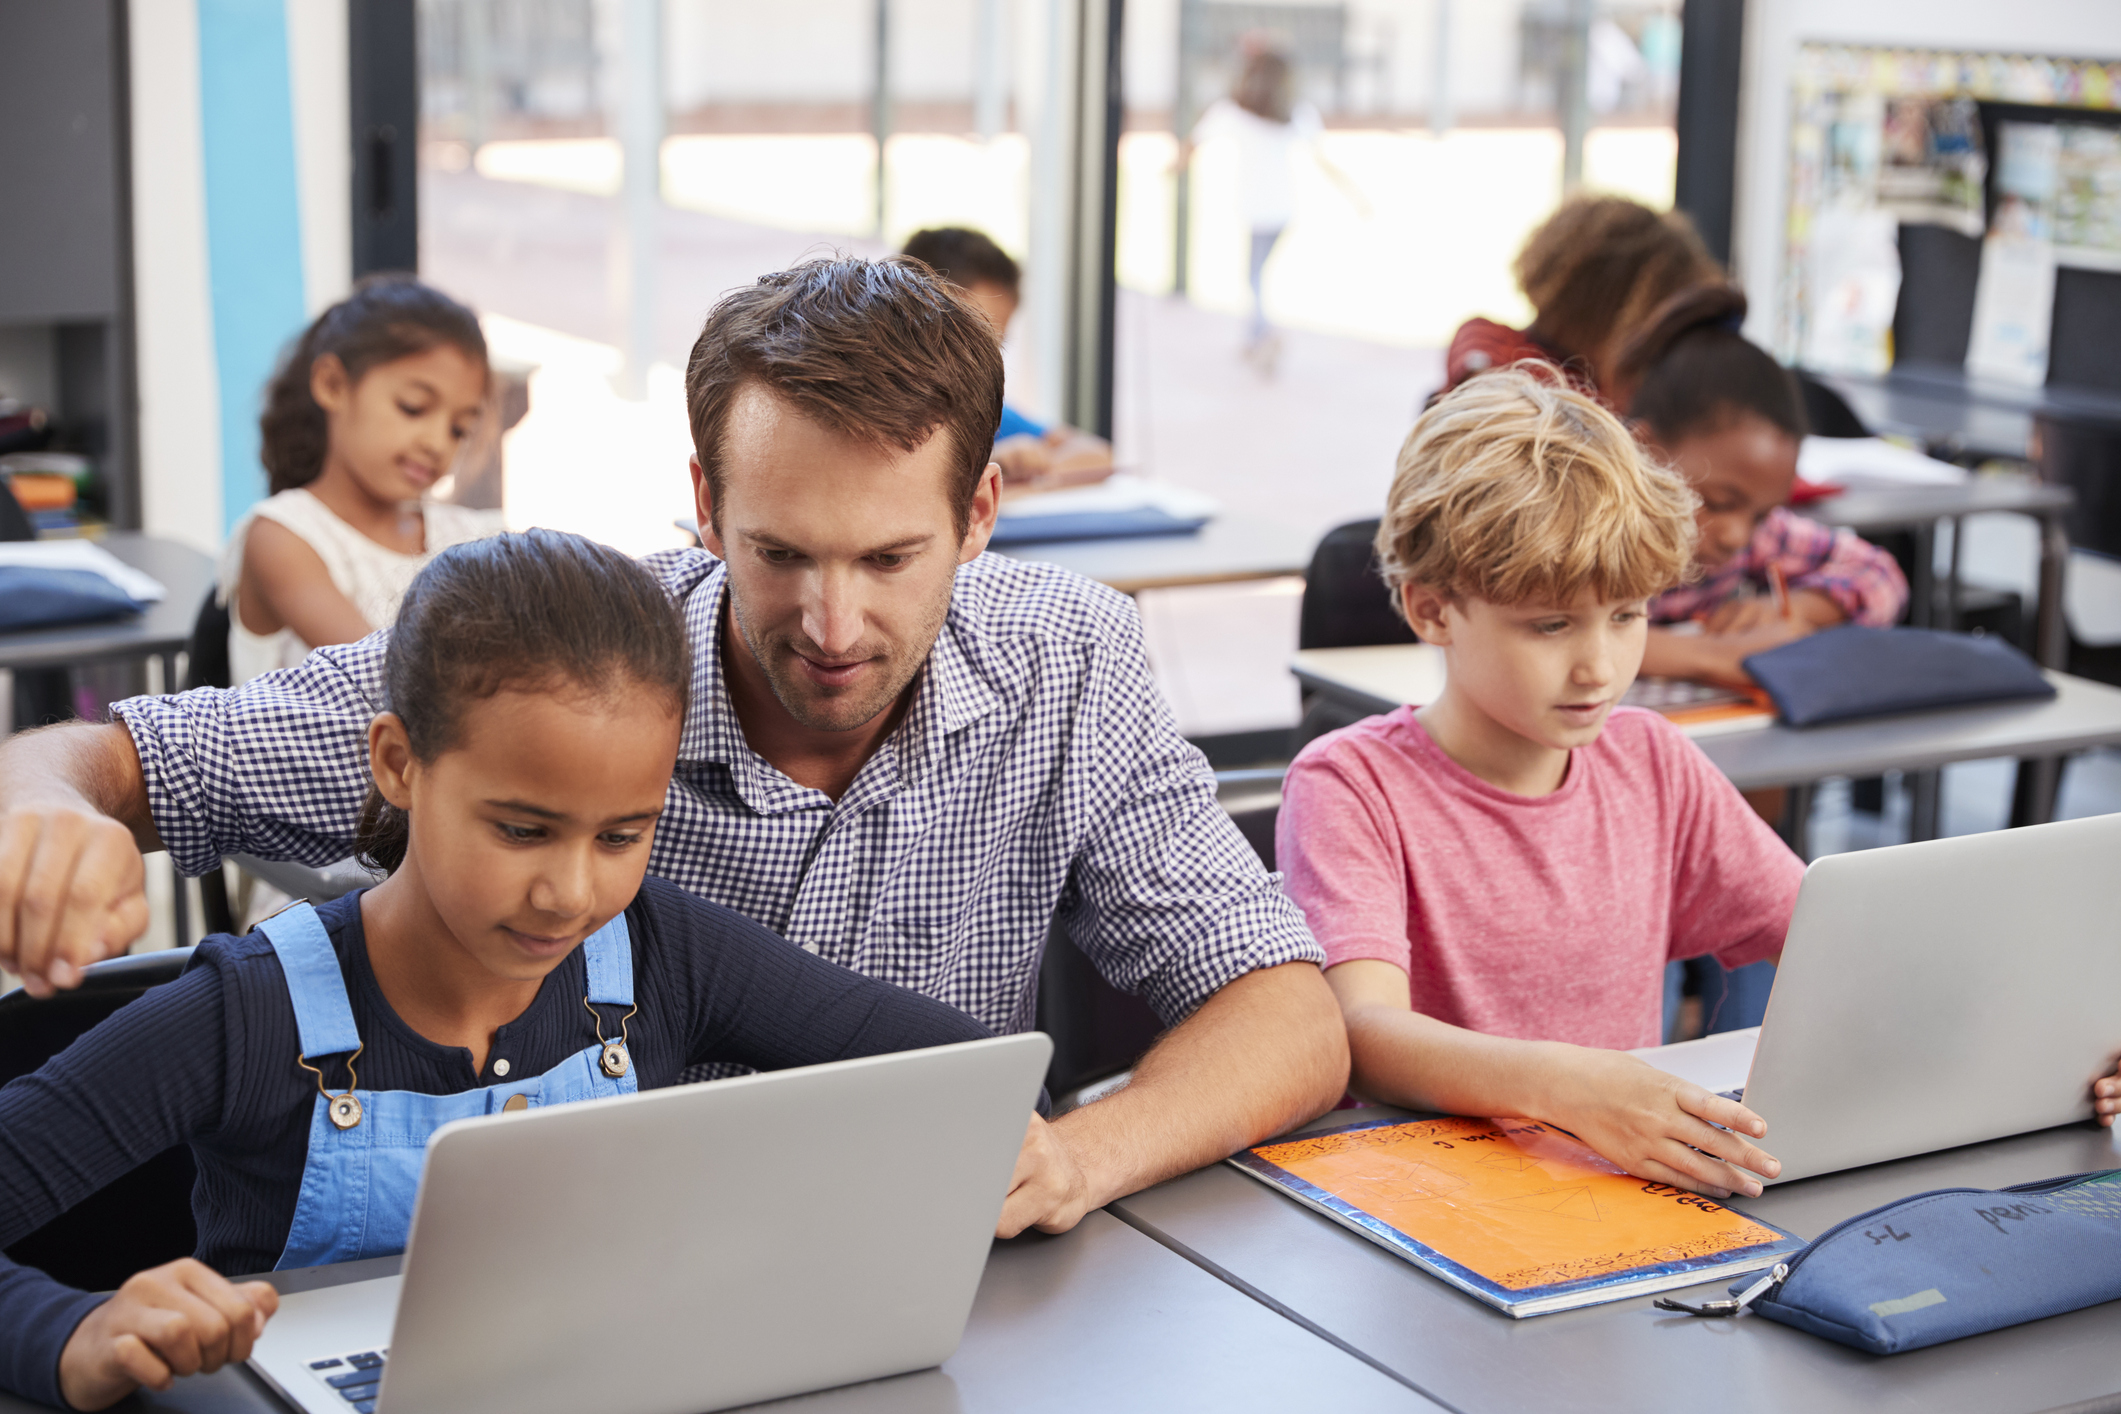 As Apple and Google Fight for Edtech Dominance, The Industry is Still Failing Kids and Teachers